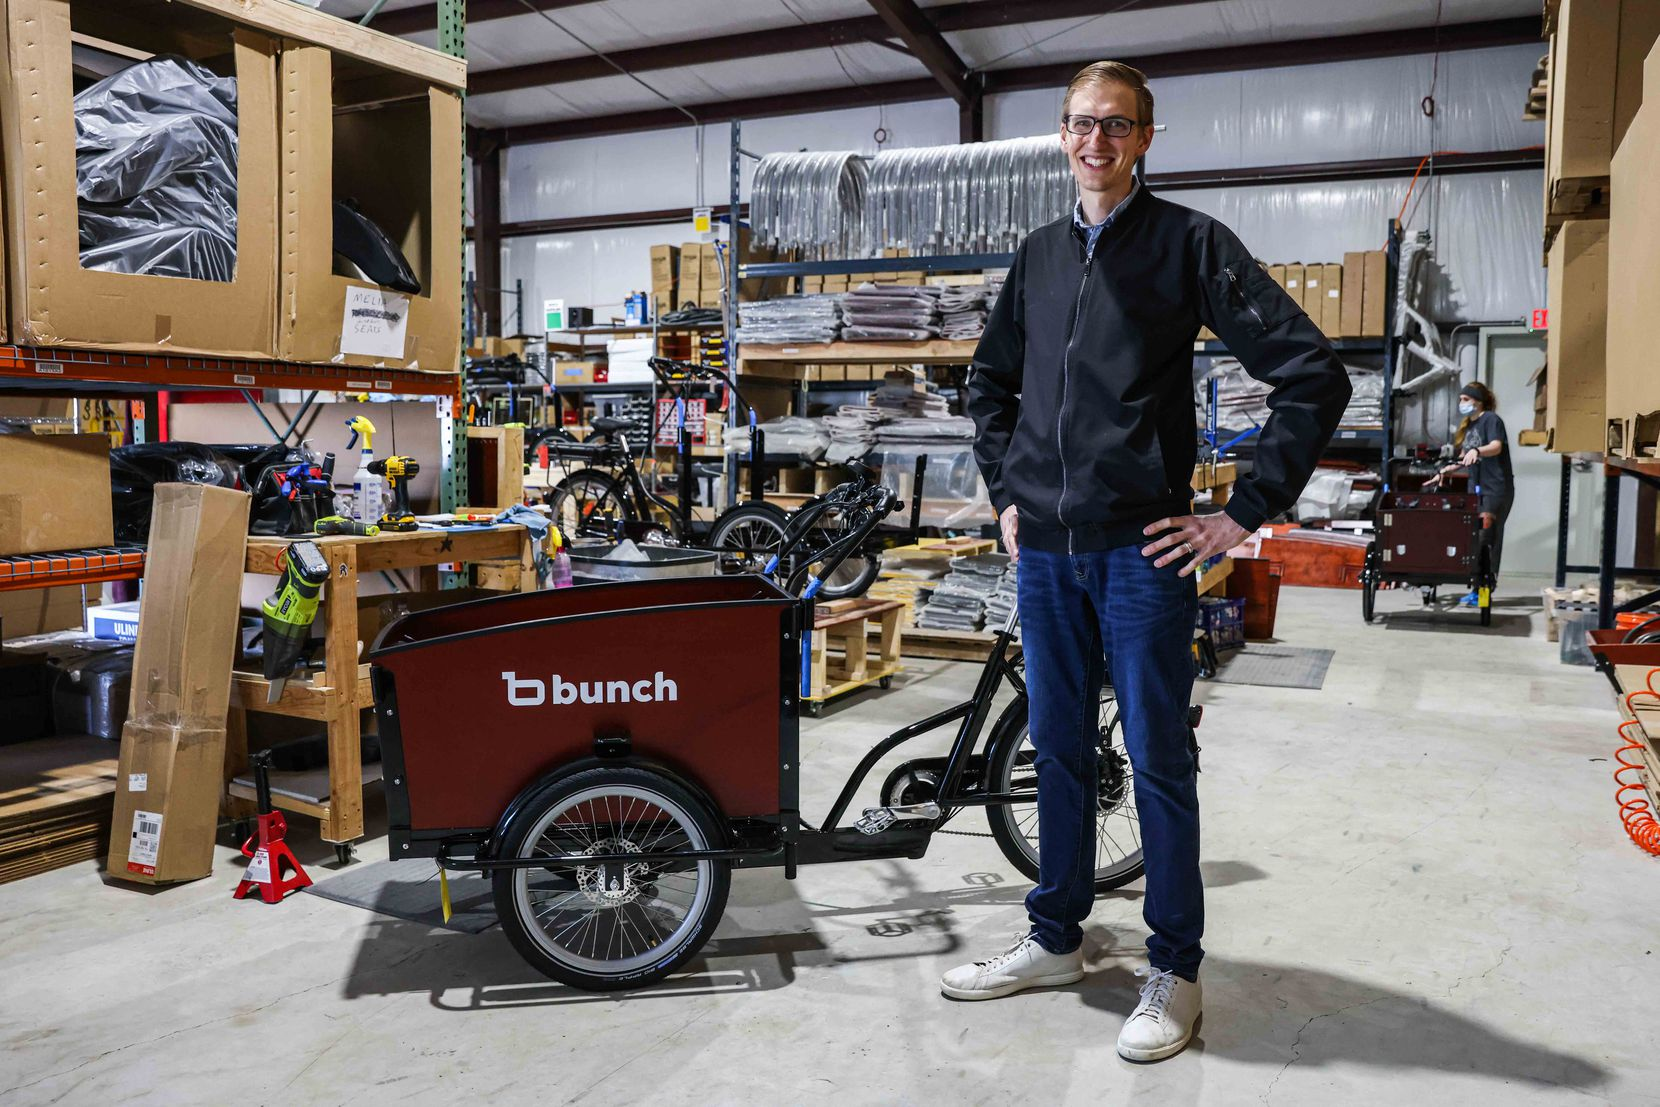 Aaron Powell poses next to one of his bikes at Bunch Bikes in Denton on Wednesday, March 24, 2021. (Lola Gomez/The Dallas Morning News)